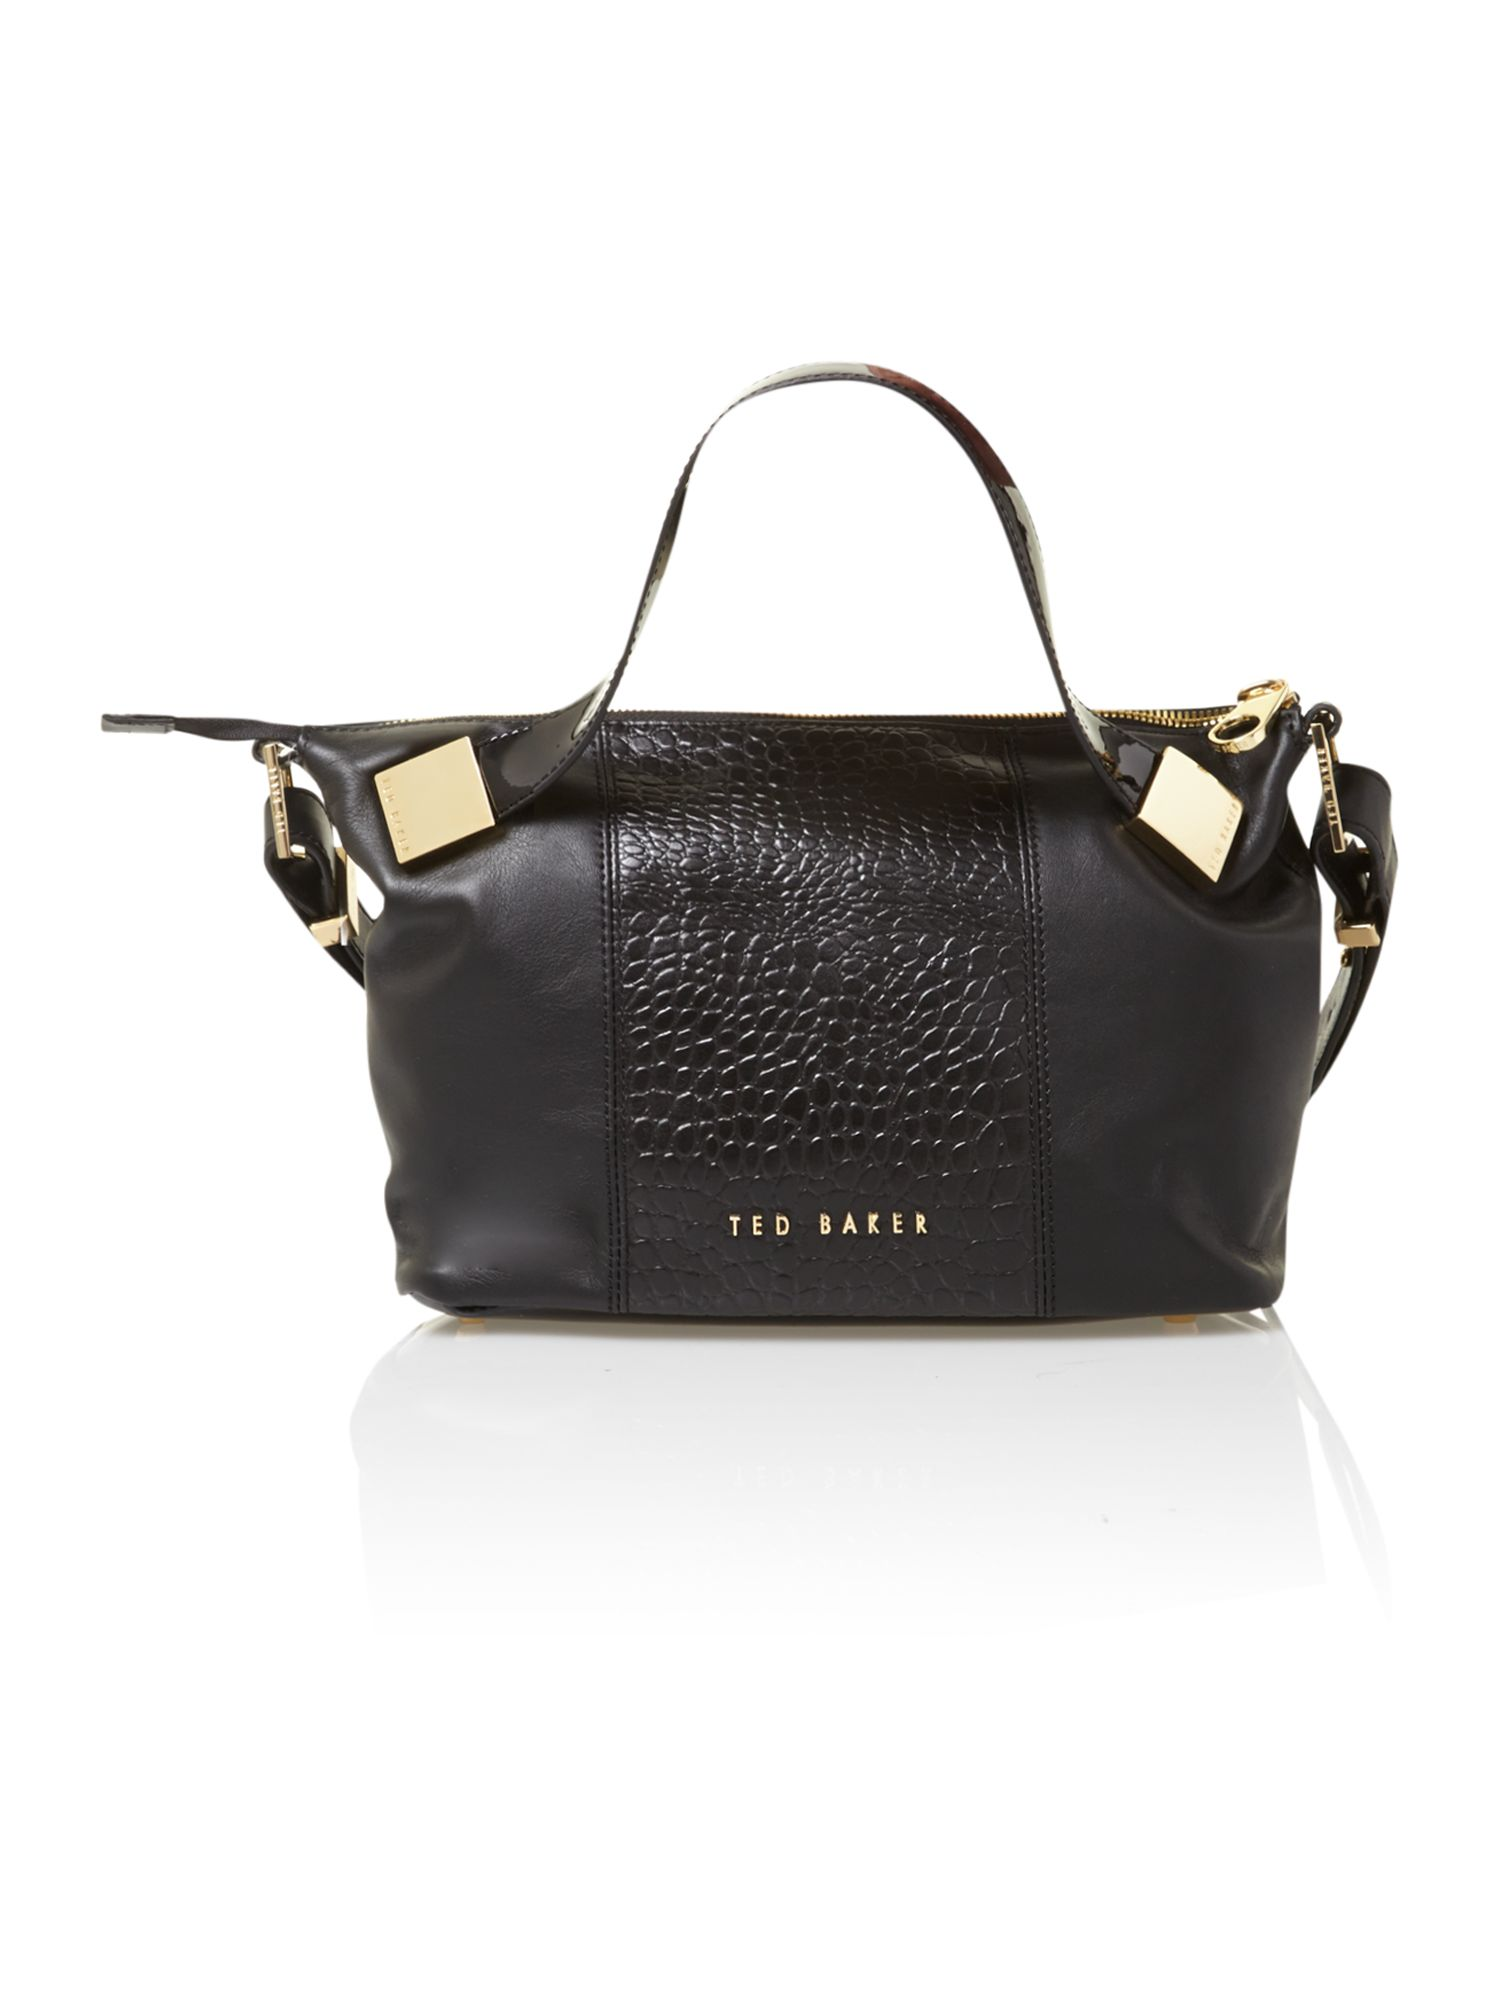 Ted Baker Croc leather black tote